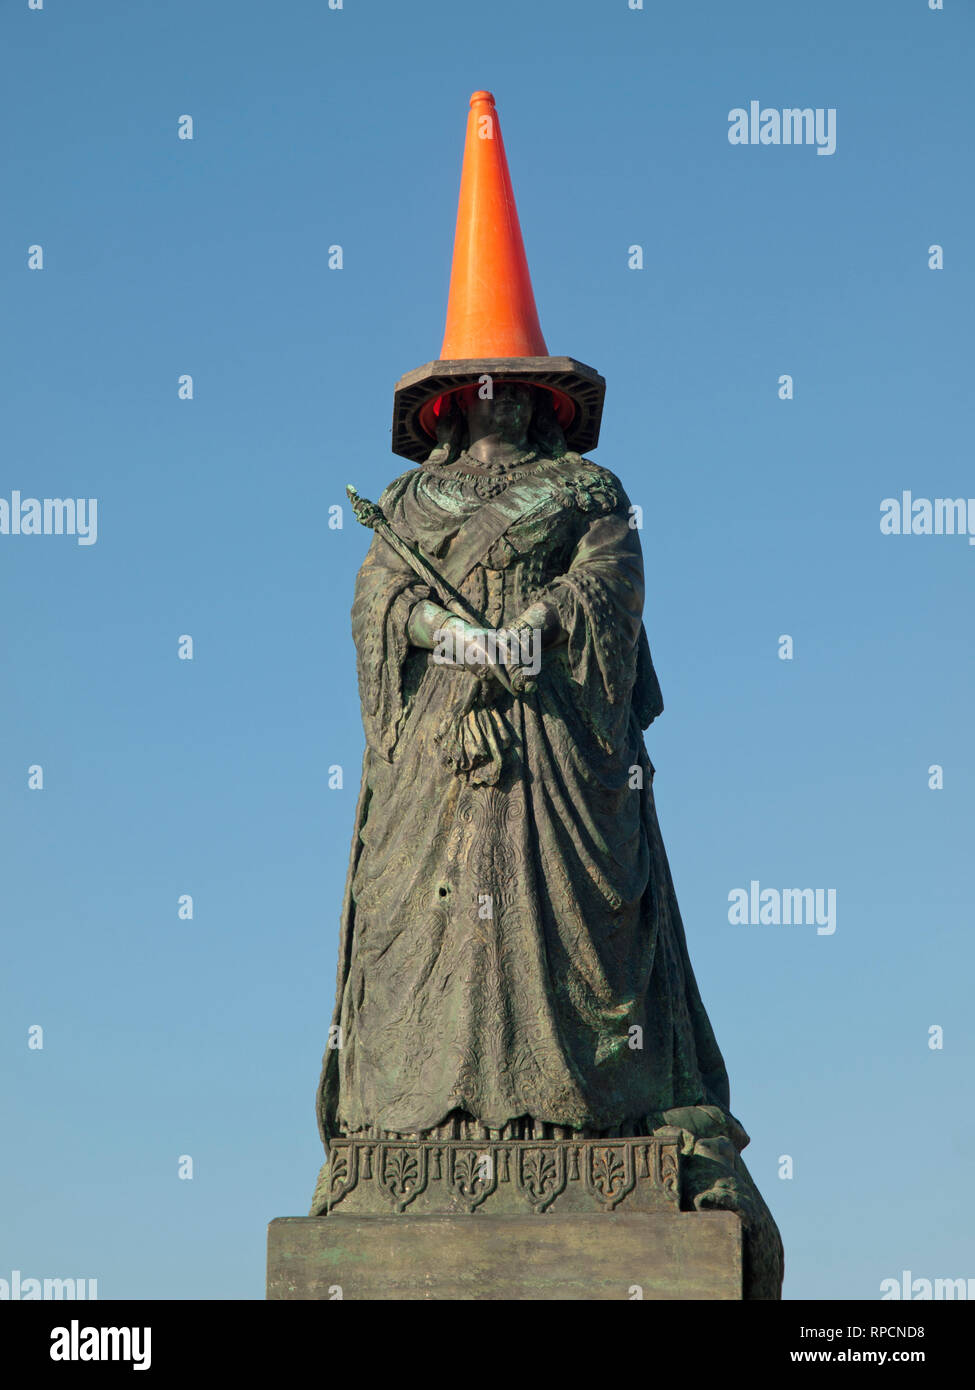 A statue of Queen Victoria with a traffic cone on her head in Hastings - Stock Image